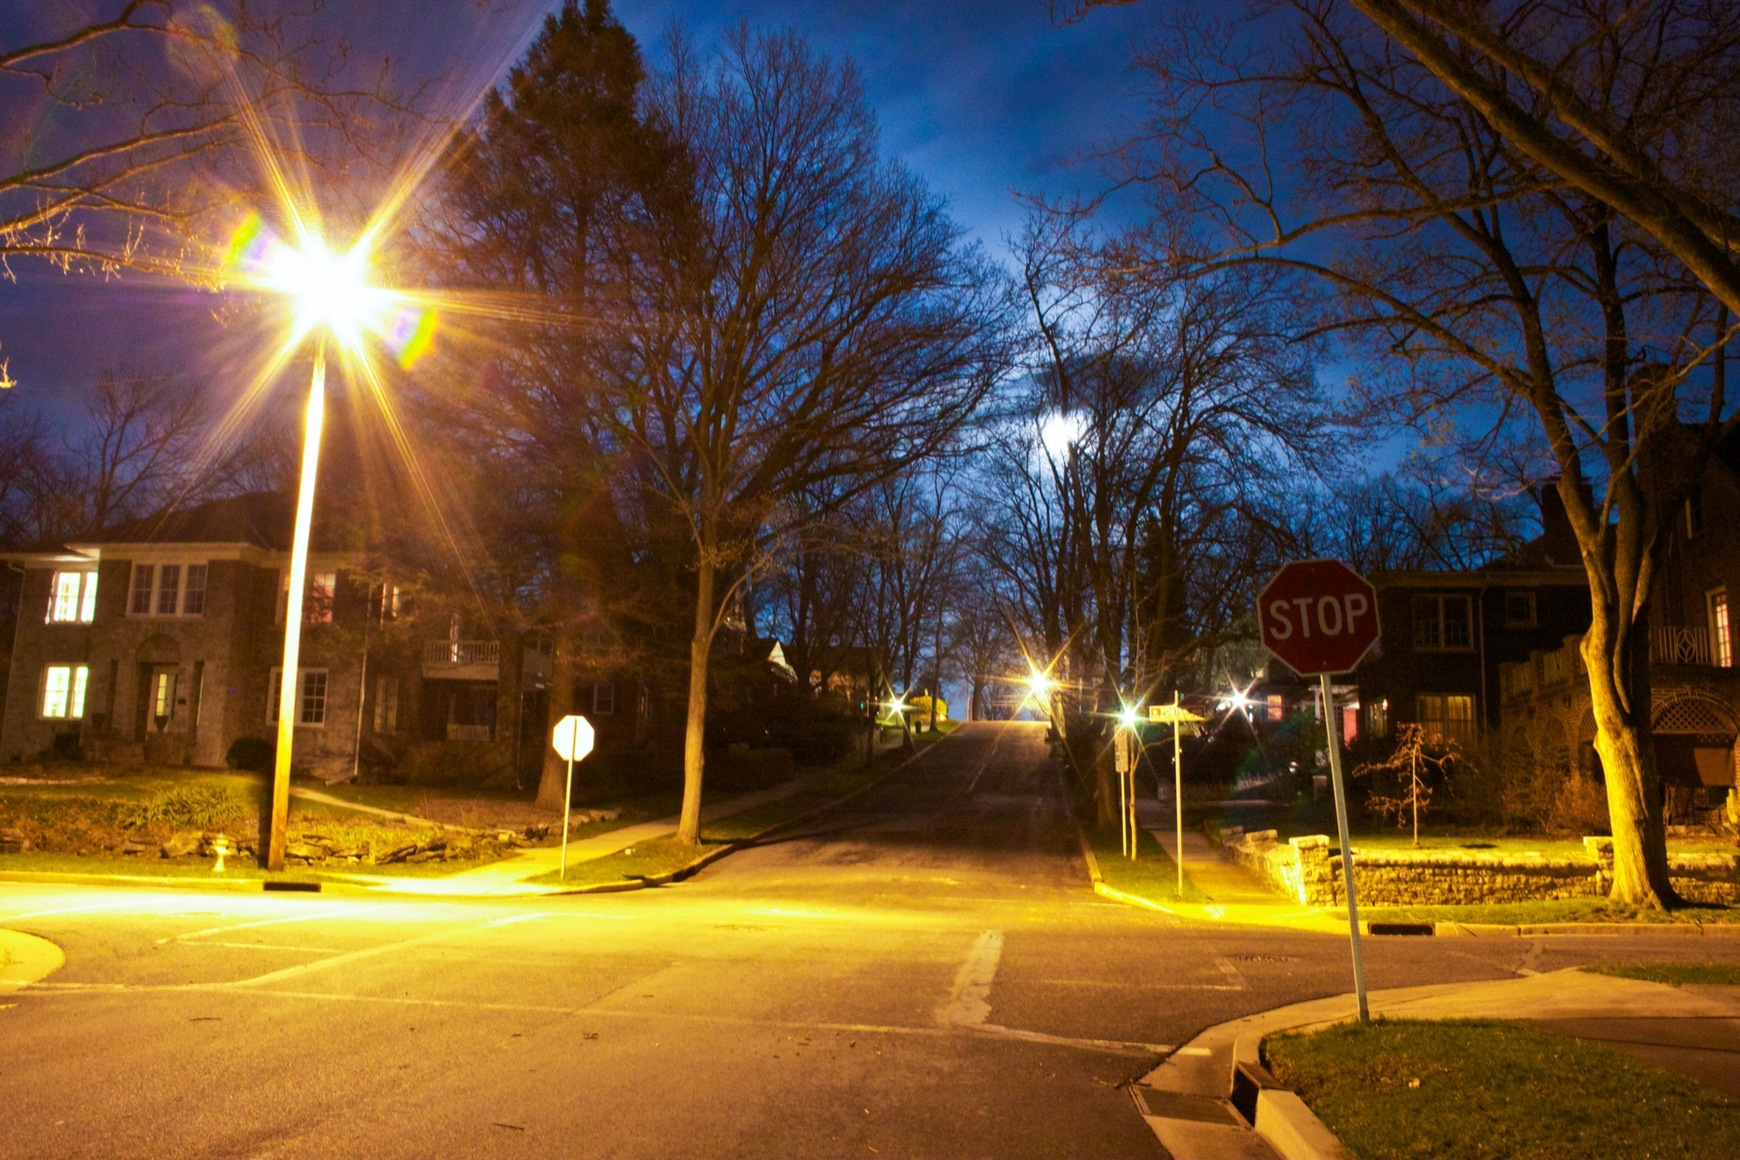 Still Looking for Off-Campus Housing? - Onward State